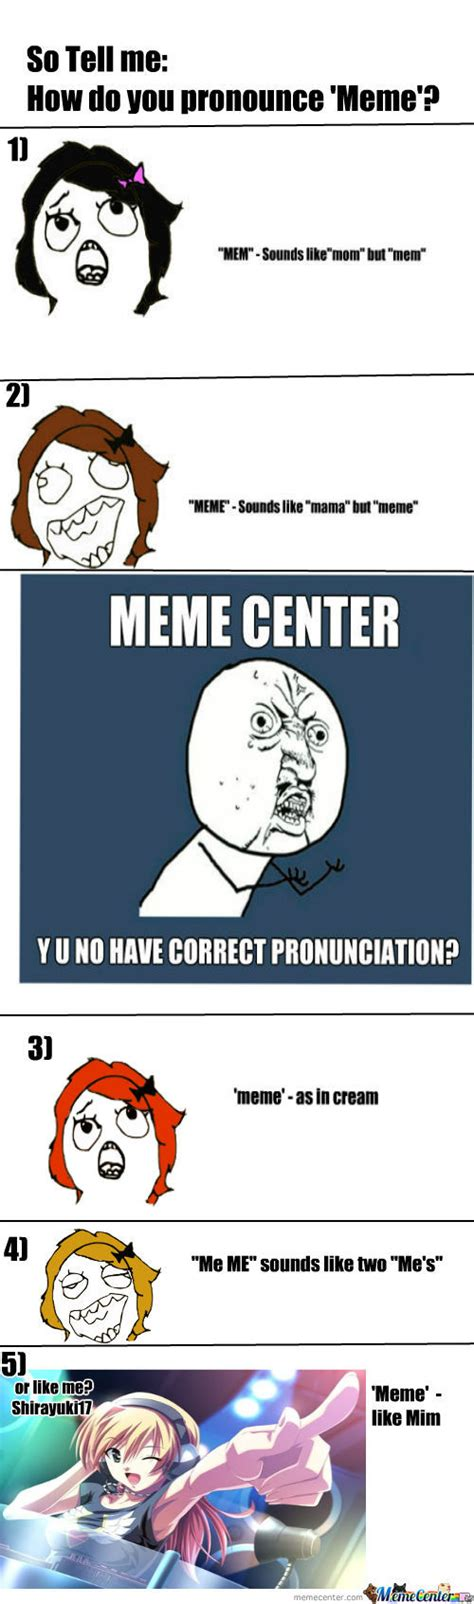 Pronounciation Of Meme - pronunciation of meme 28 images oh god why how to pronounce meme meme collection the